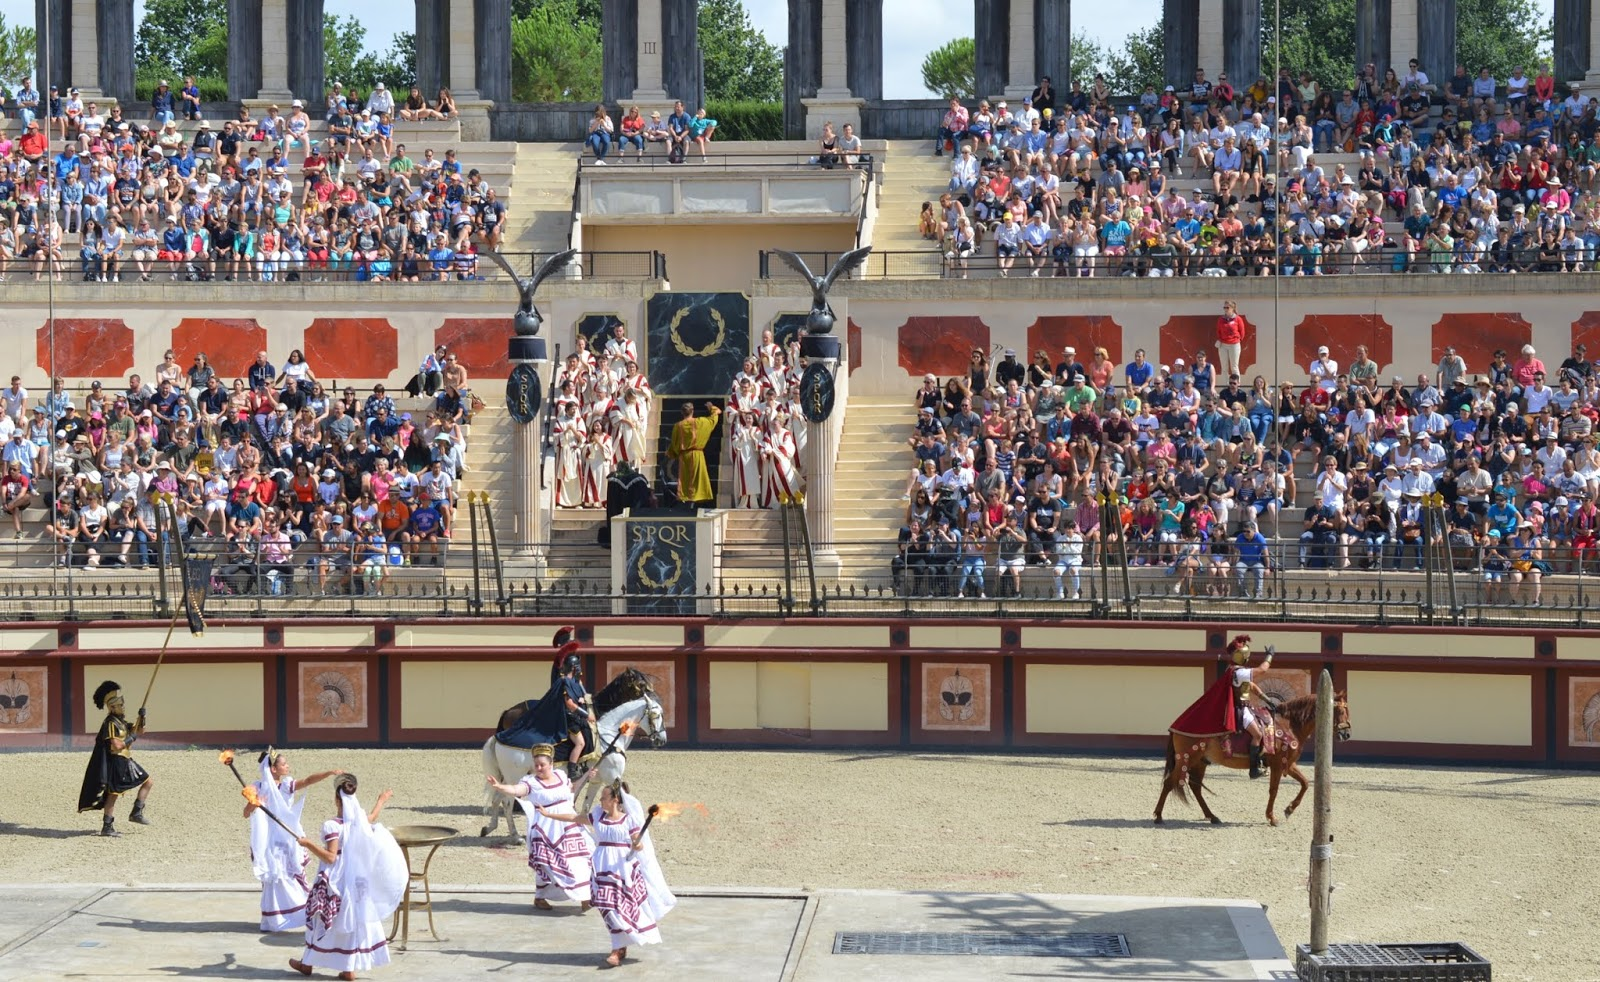 Puy du Fou Theme Park, France - Gladiator Stadium